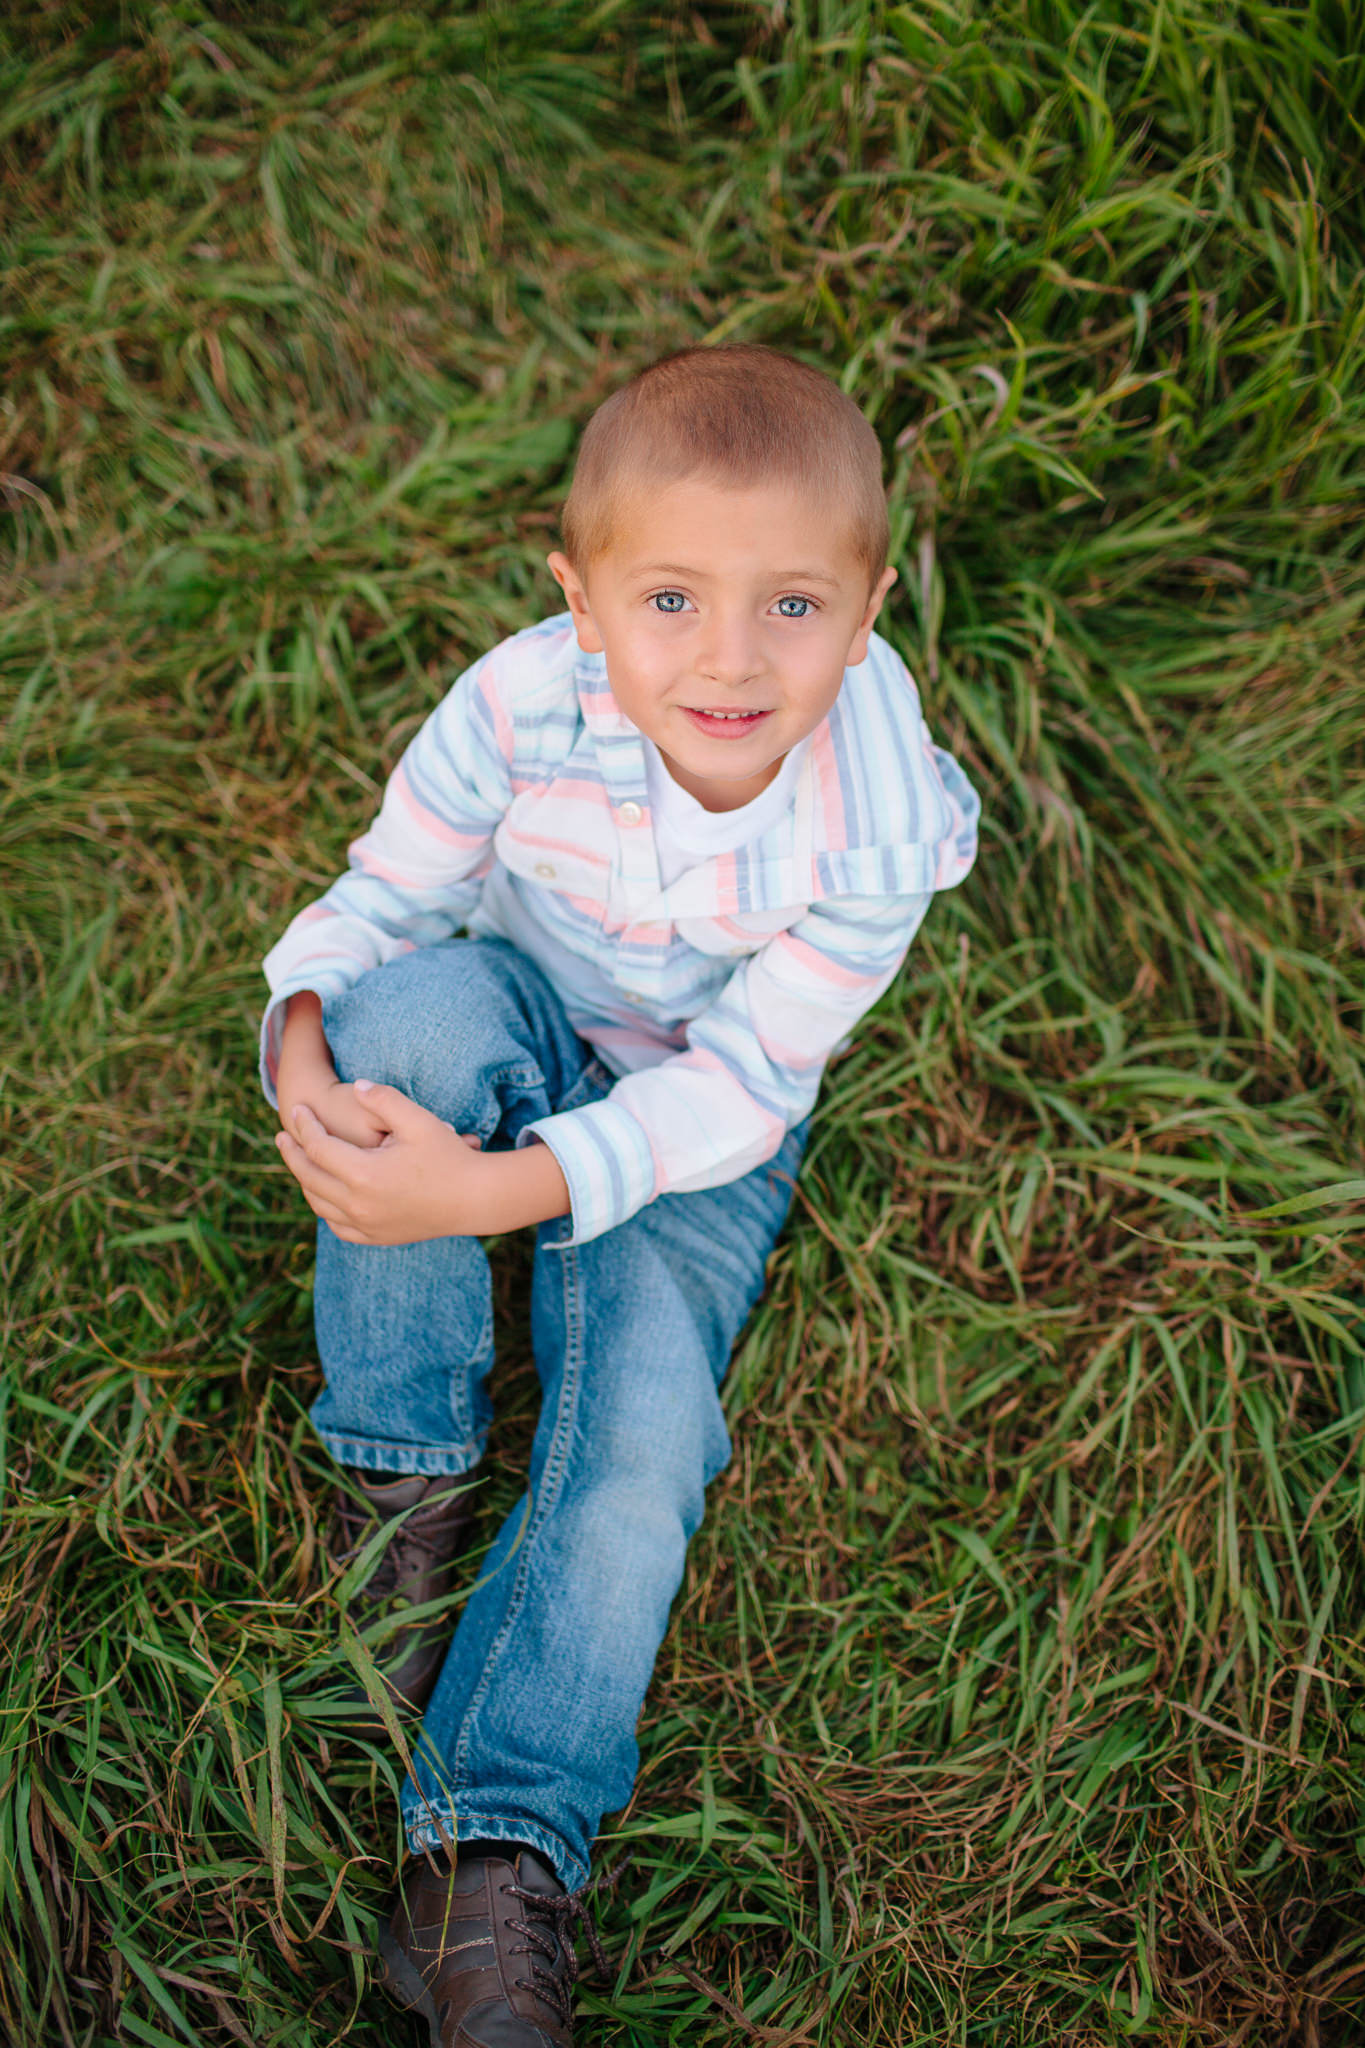 boy in grass smiling for portrait